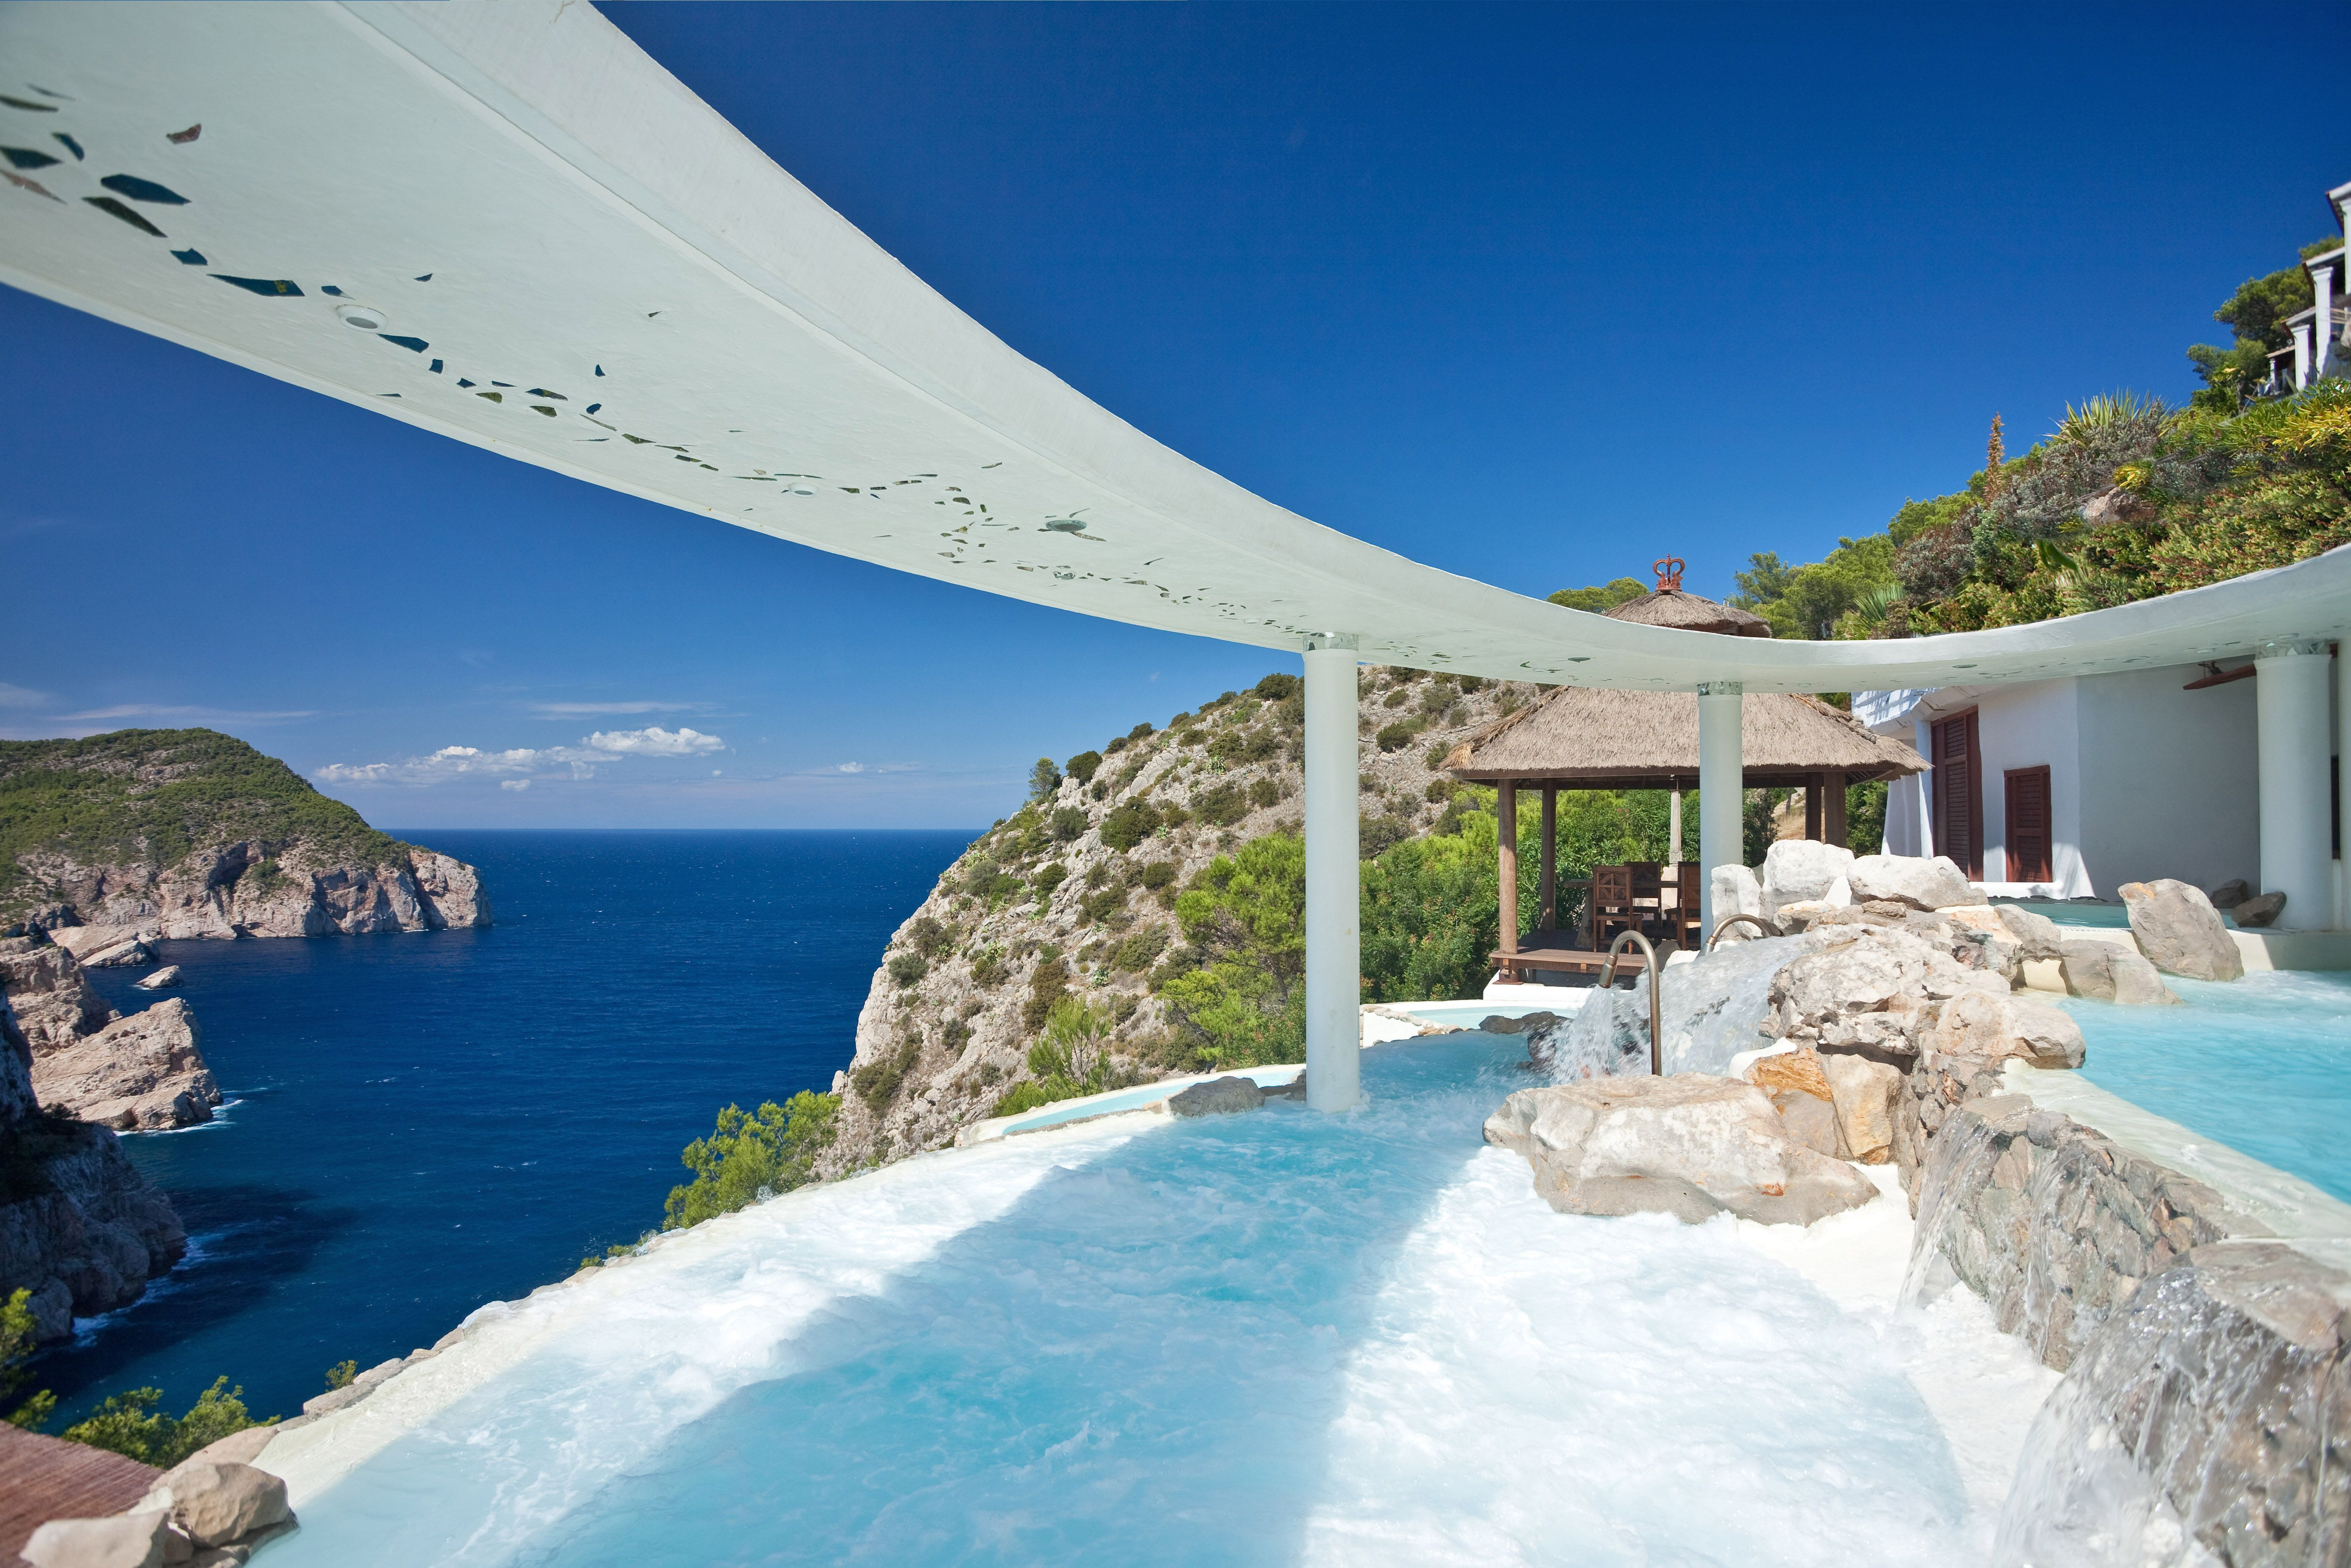 We Re Very Excited To Annouhacienda Na Xamena Hotel In Ibiza Set High On